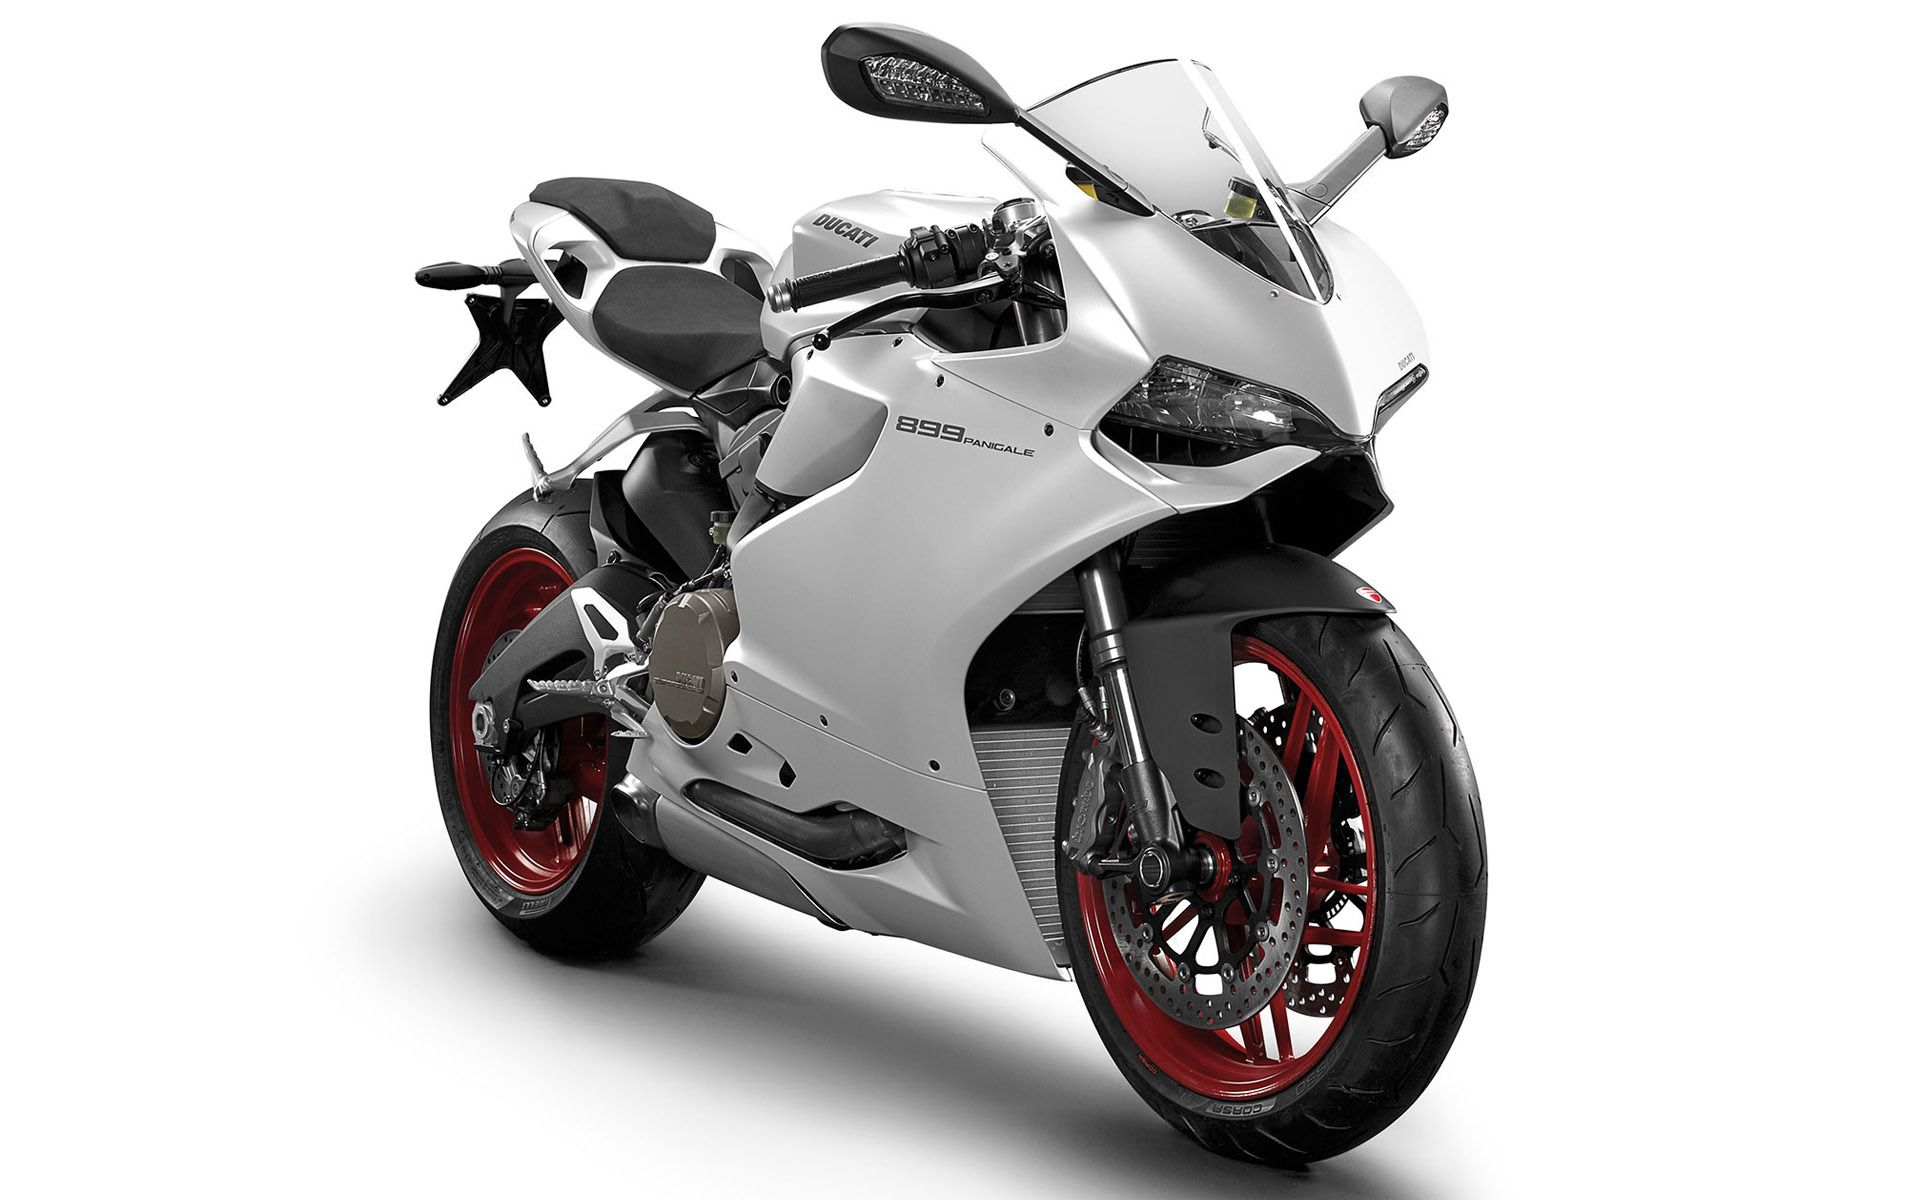 2015 ducati superbike 1299 panigale s powerfull moto hd wallpaper